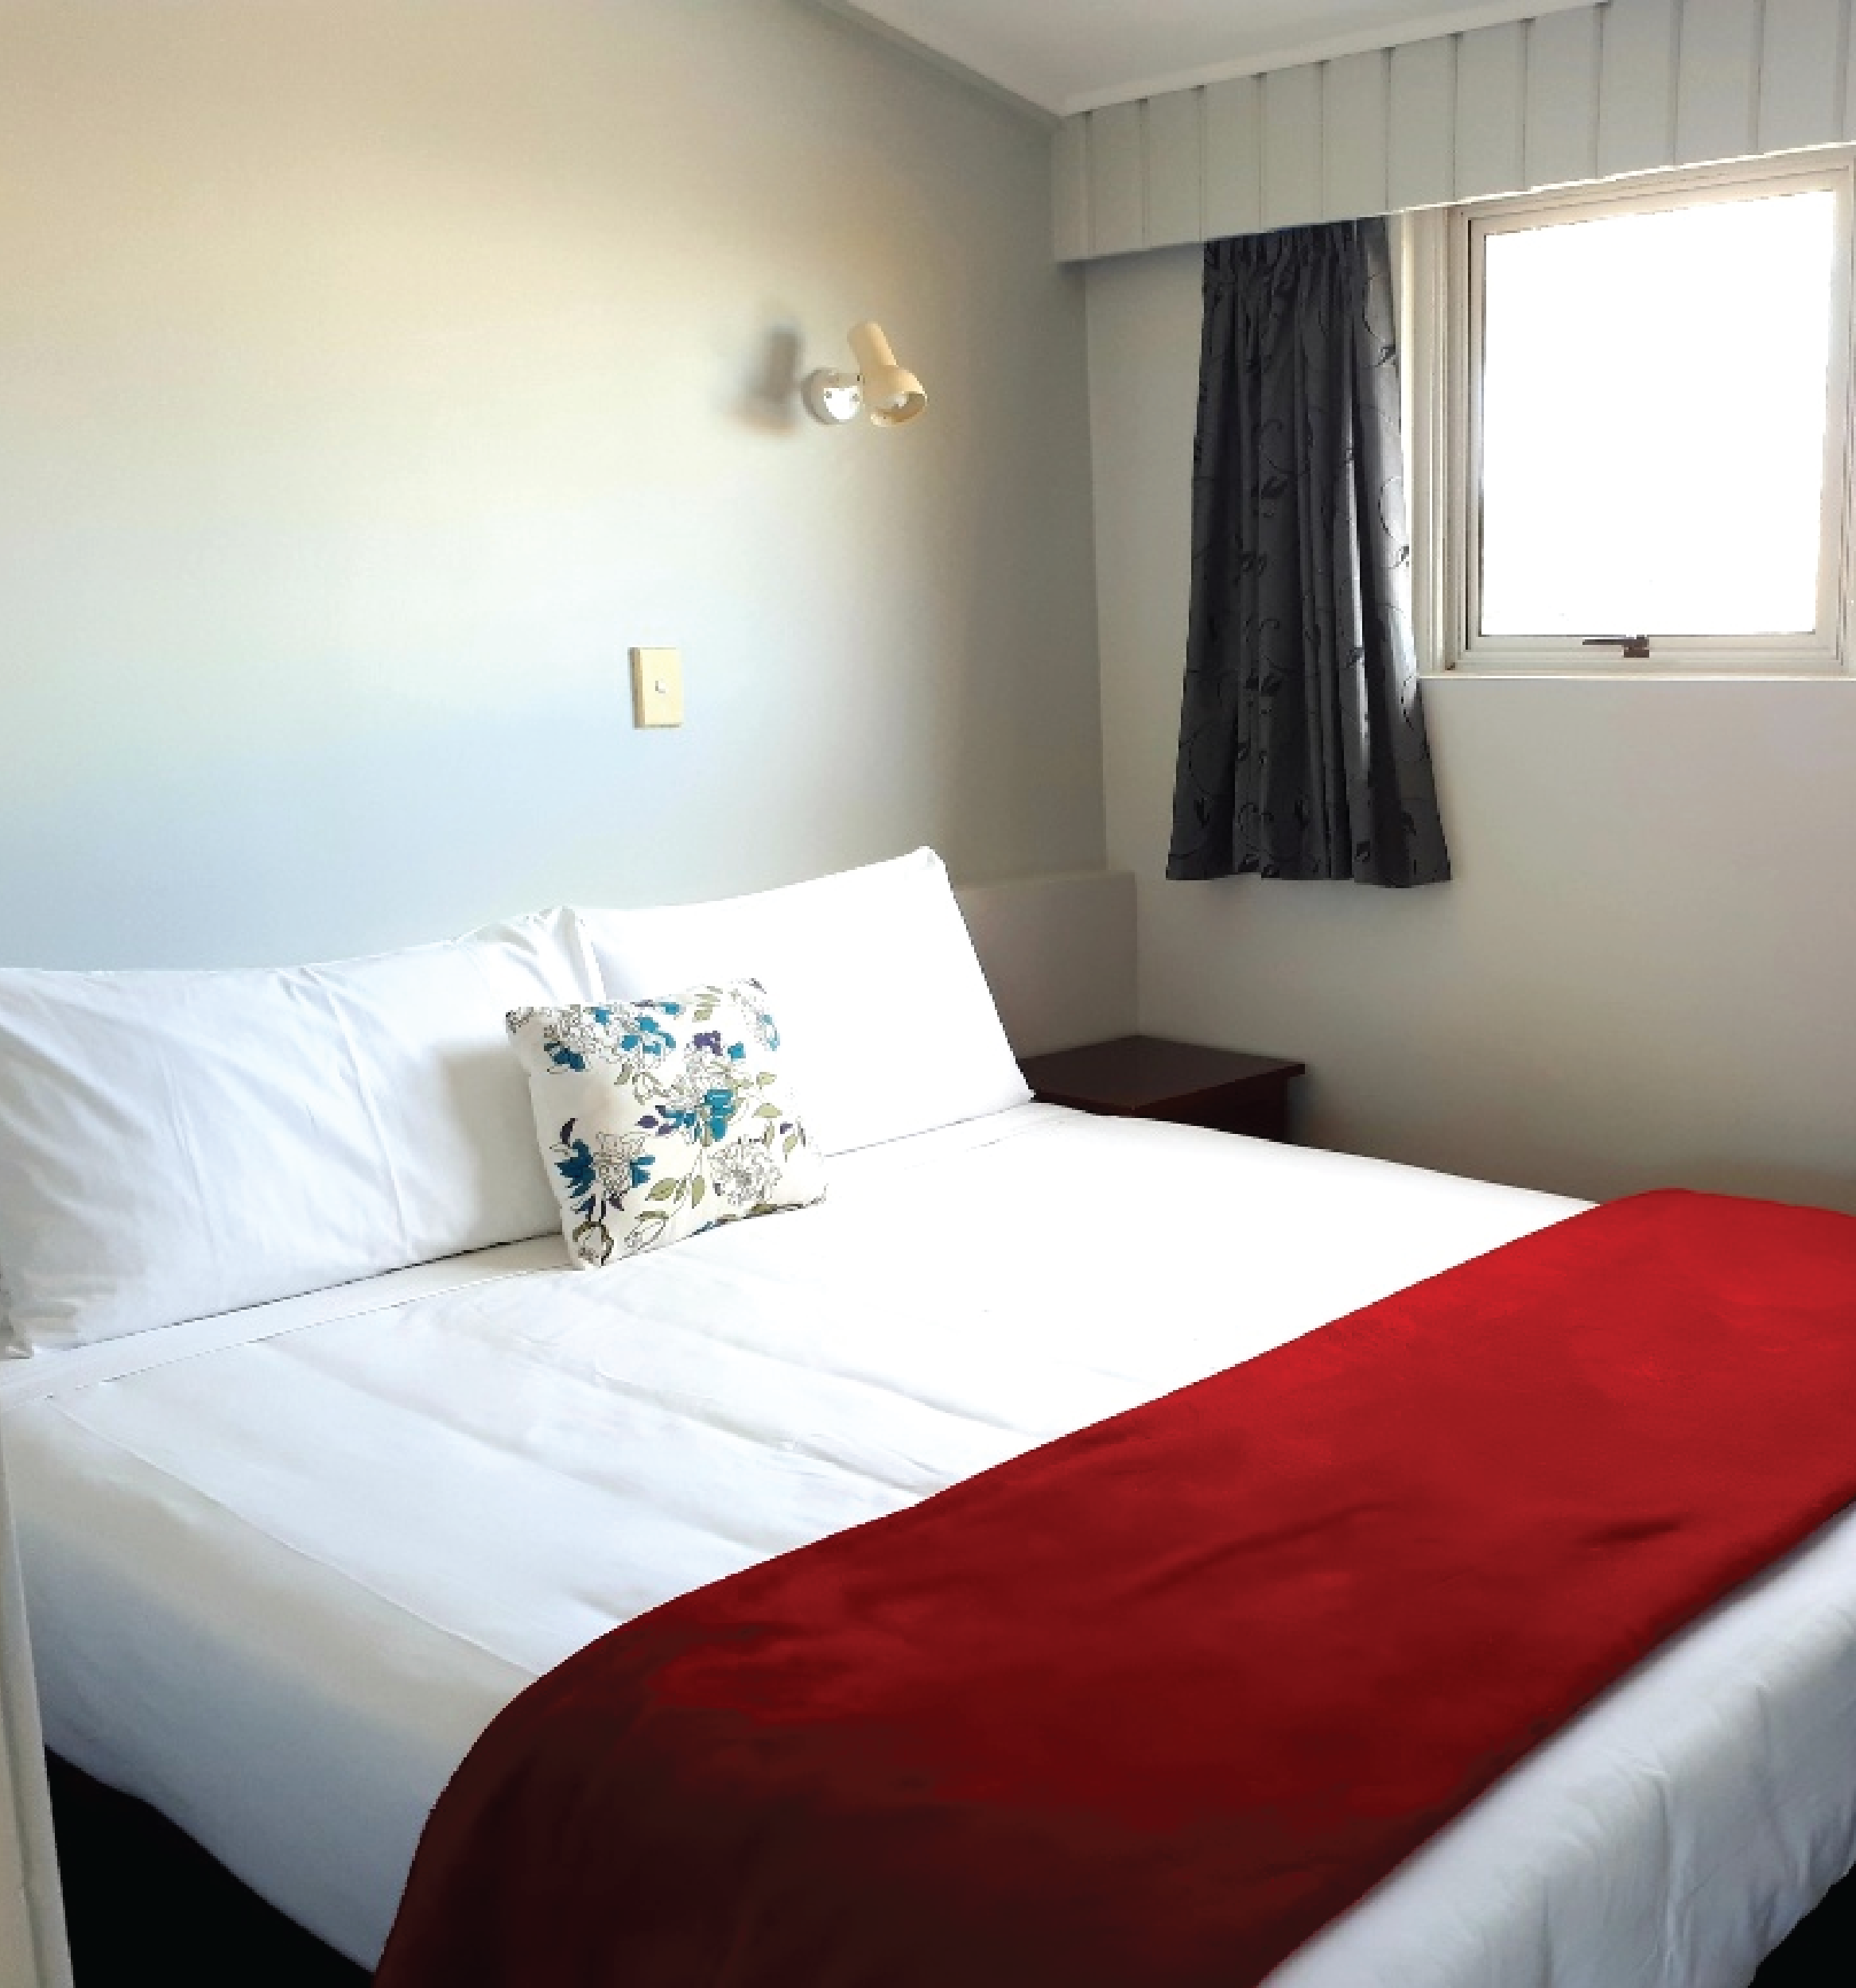 King-sized bed with a red blanket across the end.